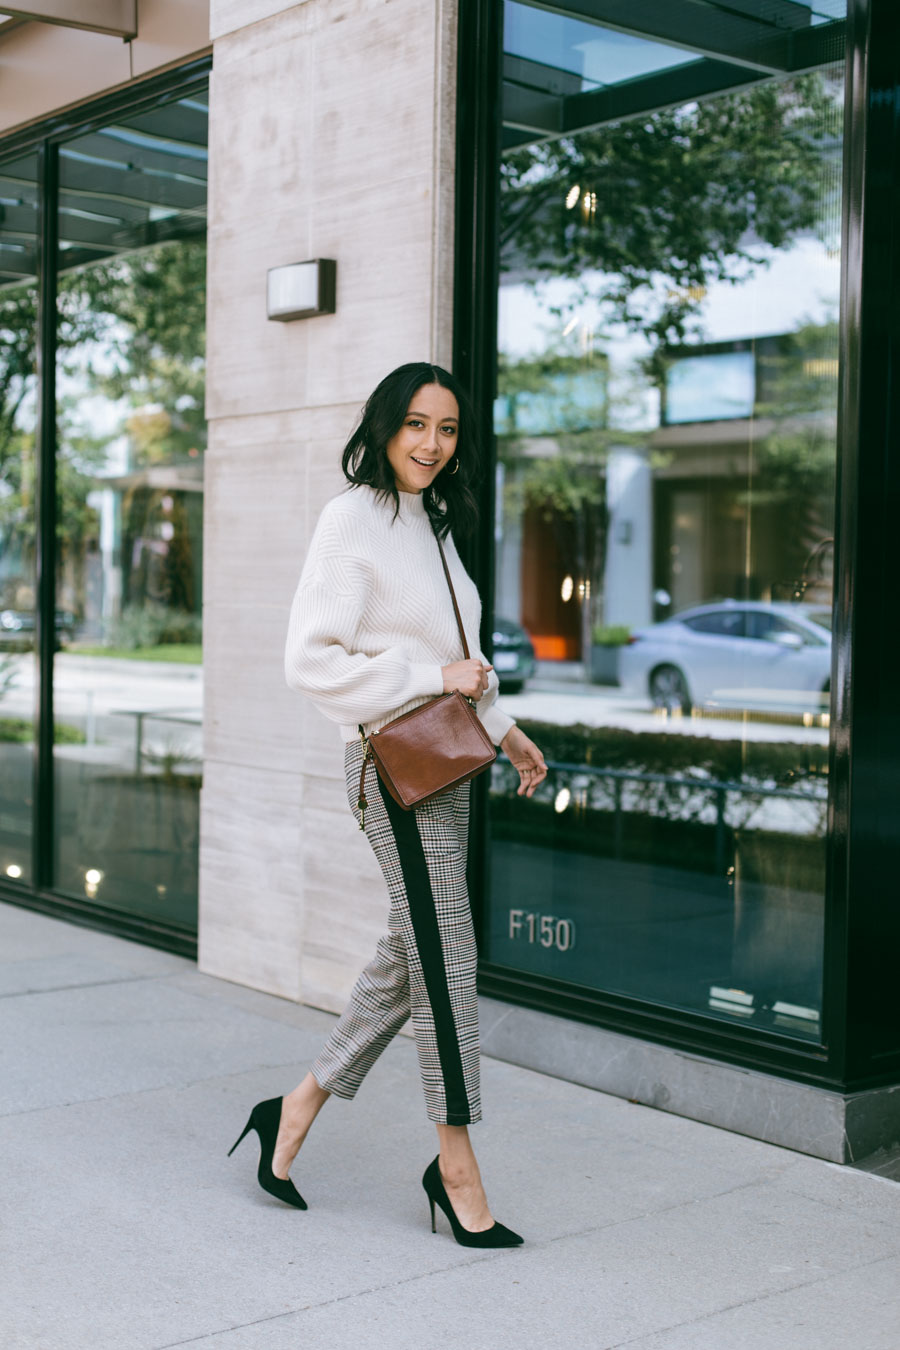 Street Style blogger Lilly Beltran wearing plaid trousers with a cream chunky sweater and black pumps for a chic thanksgiving outfit idea.